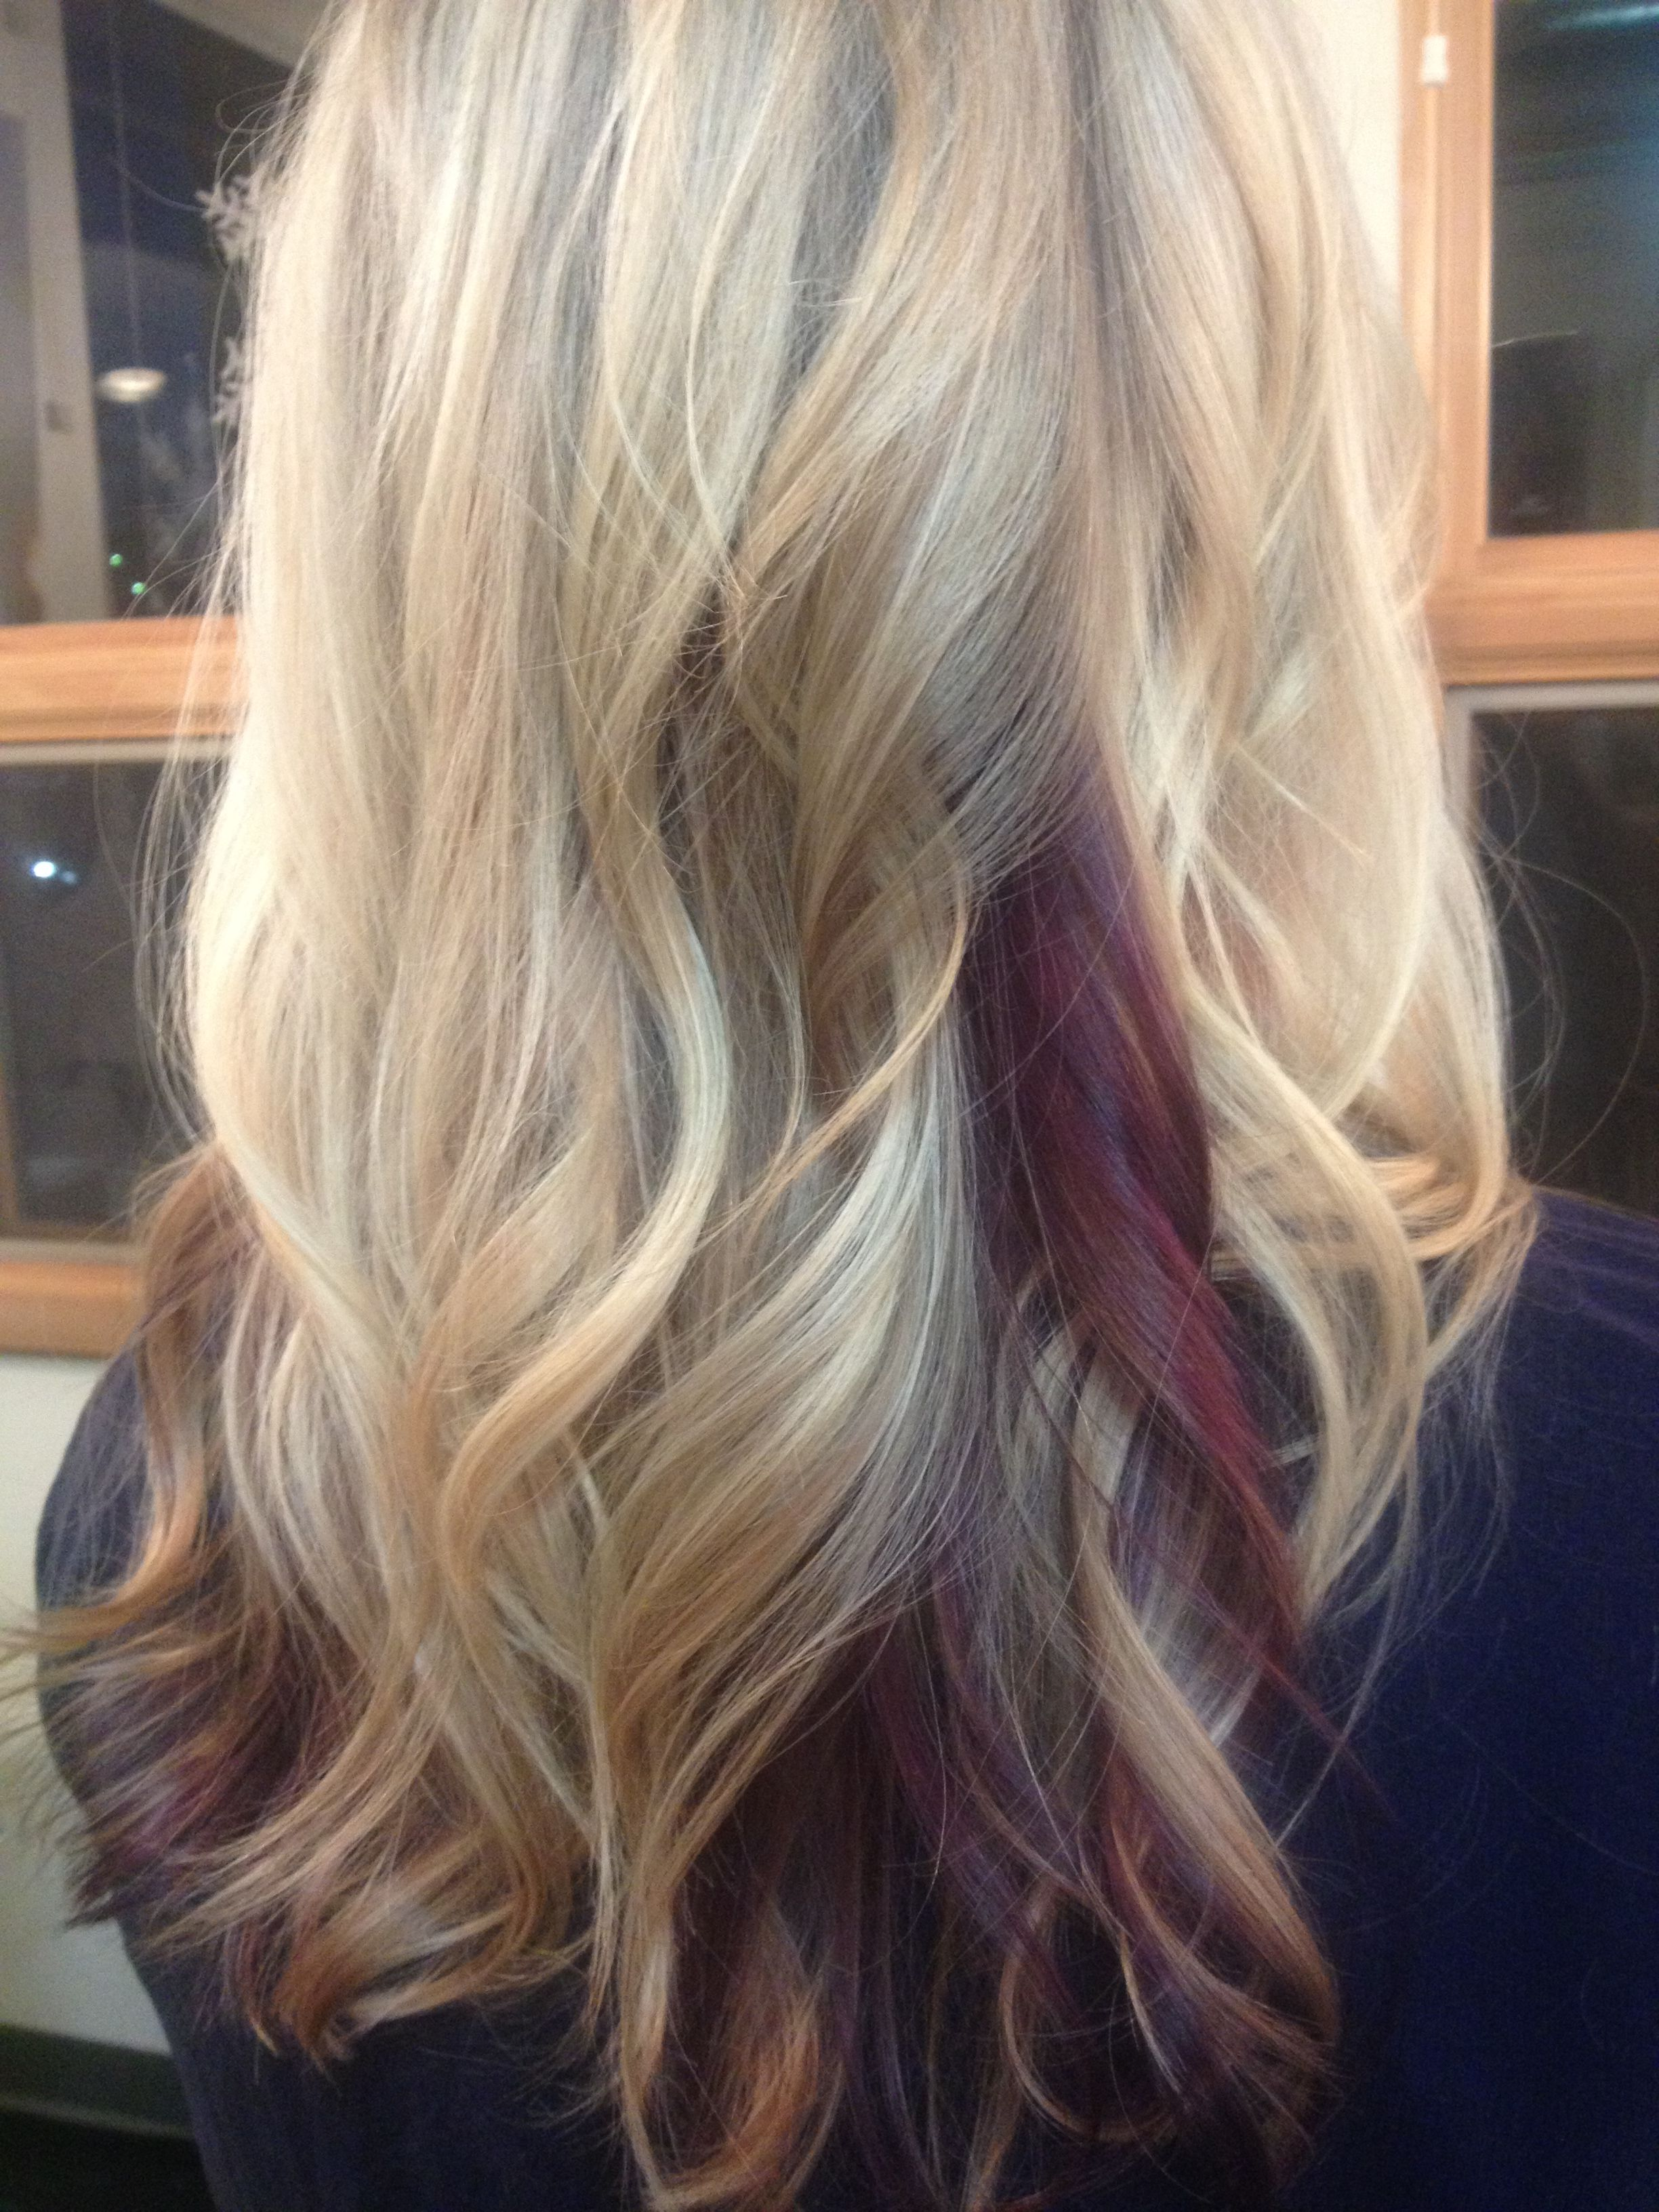 This Amazing Blonde Wanted Some Fun Yet Professional Color We Added A K Boo Pop Of Purple She Can Play Up Or Keep Hidden Making Great Hair Days At